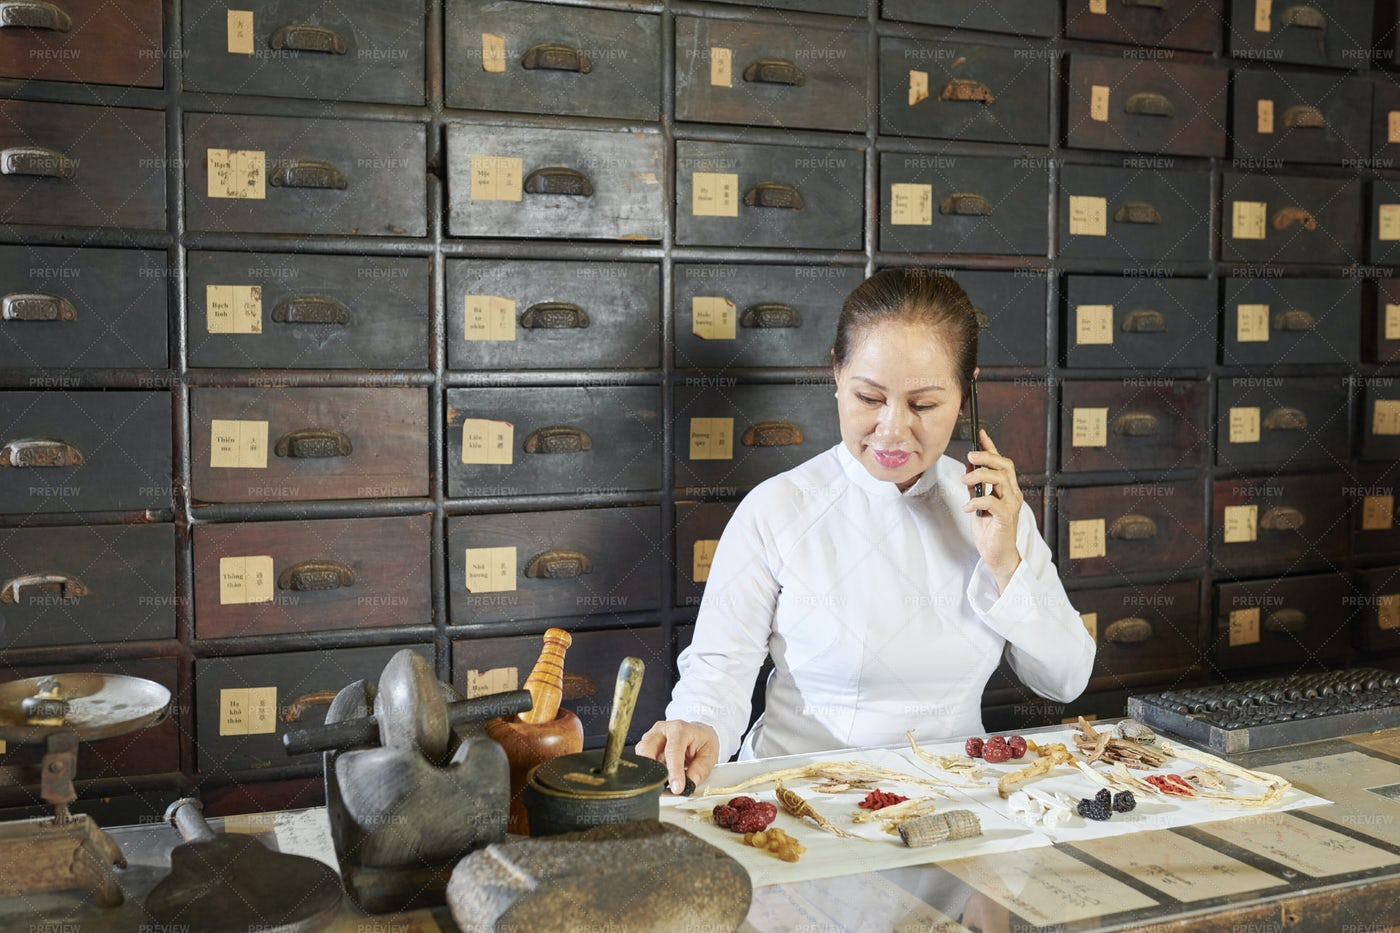 Mature Asian Woman Packing Orders In: Stock Photos